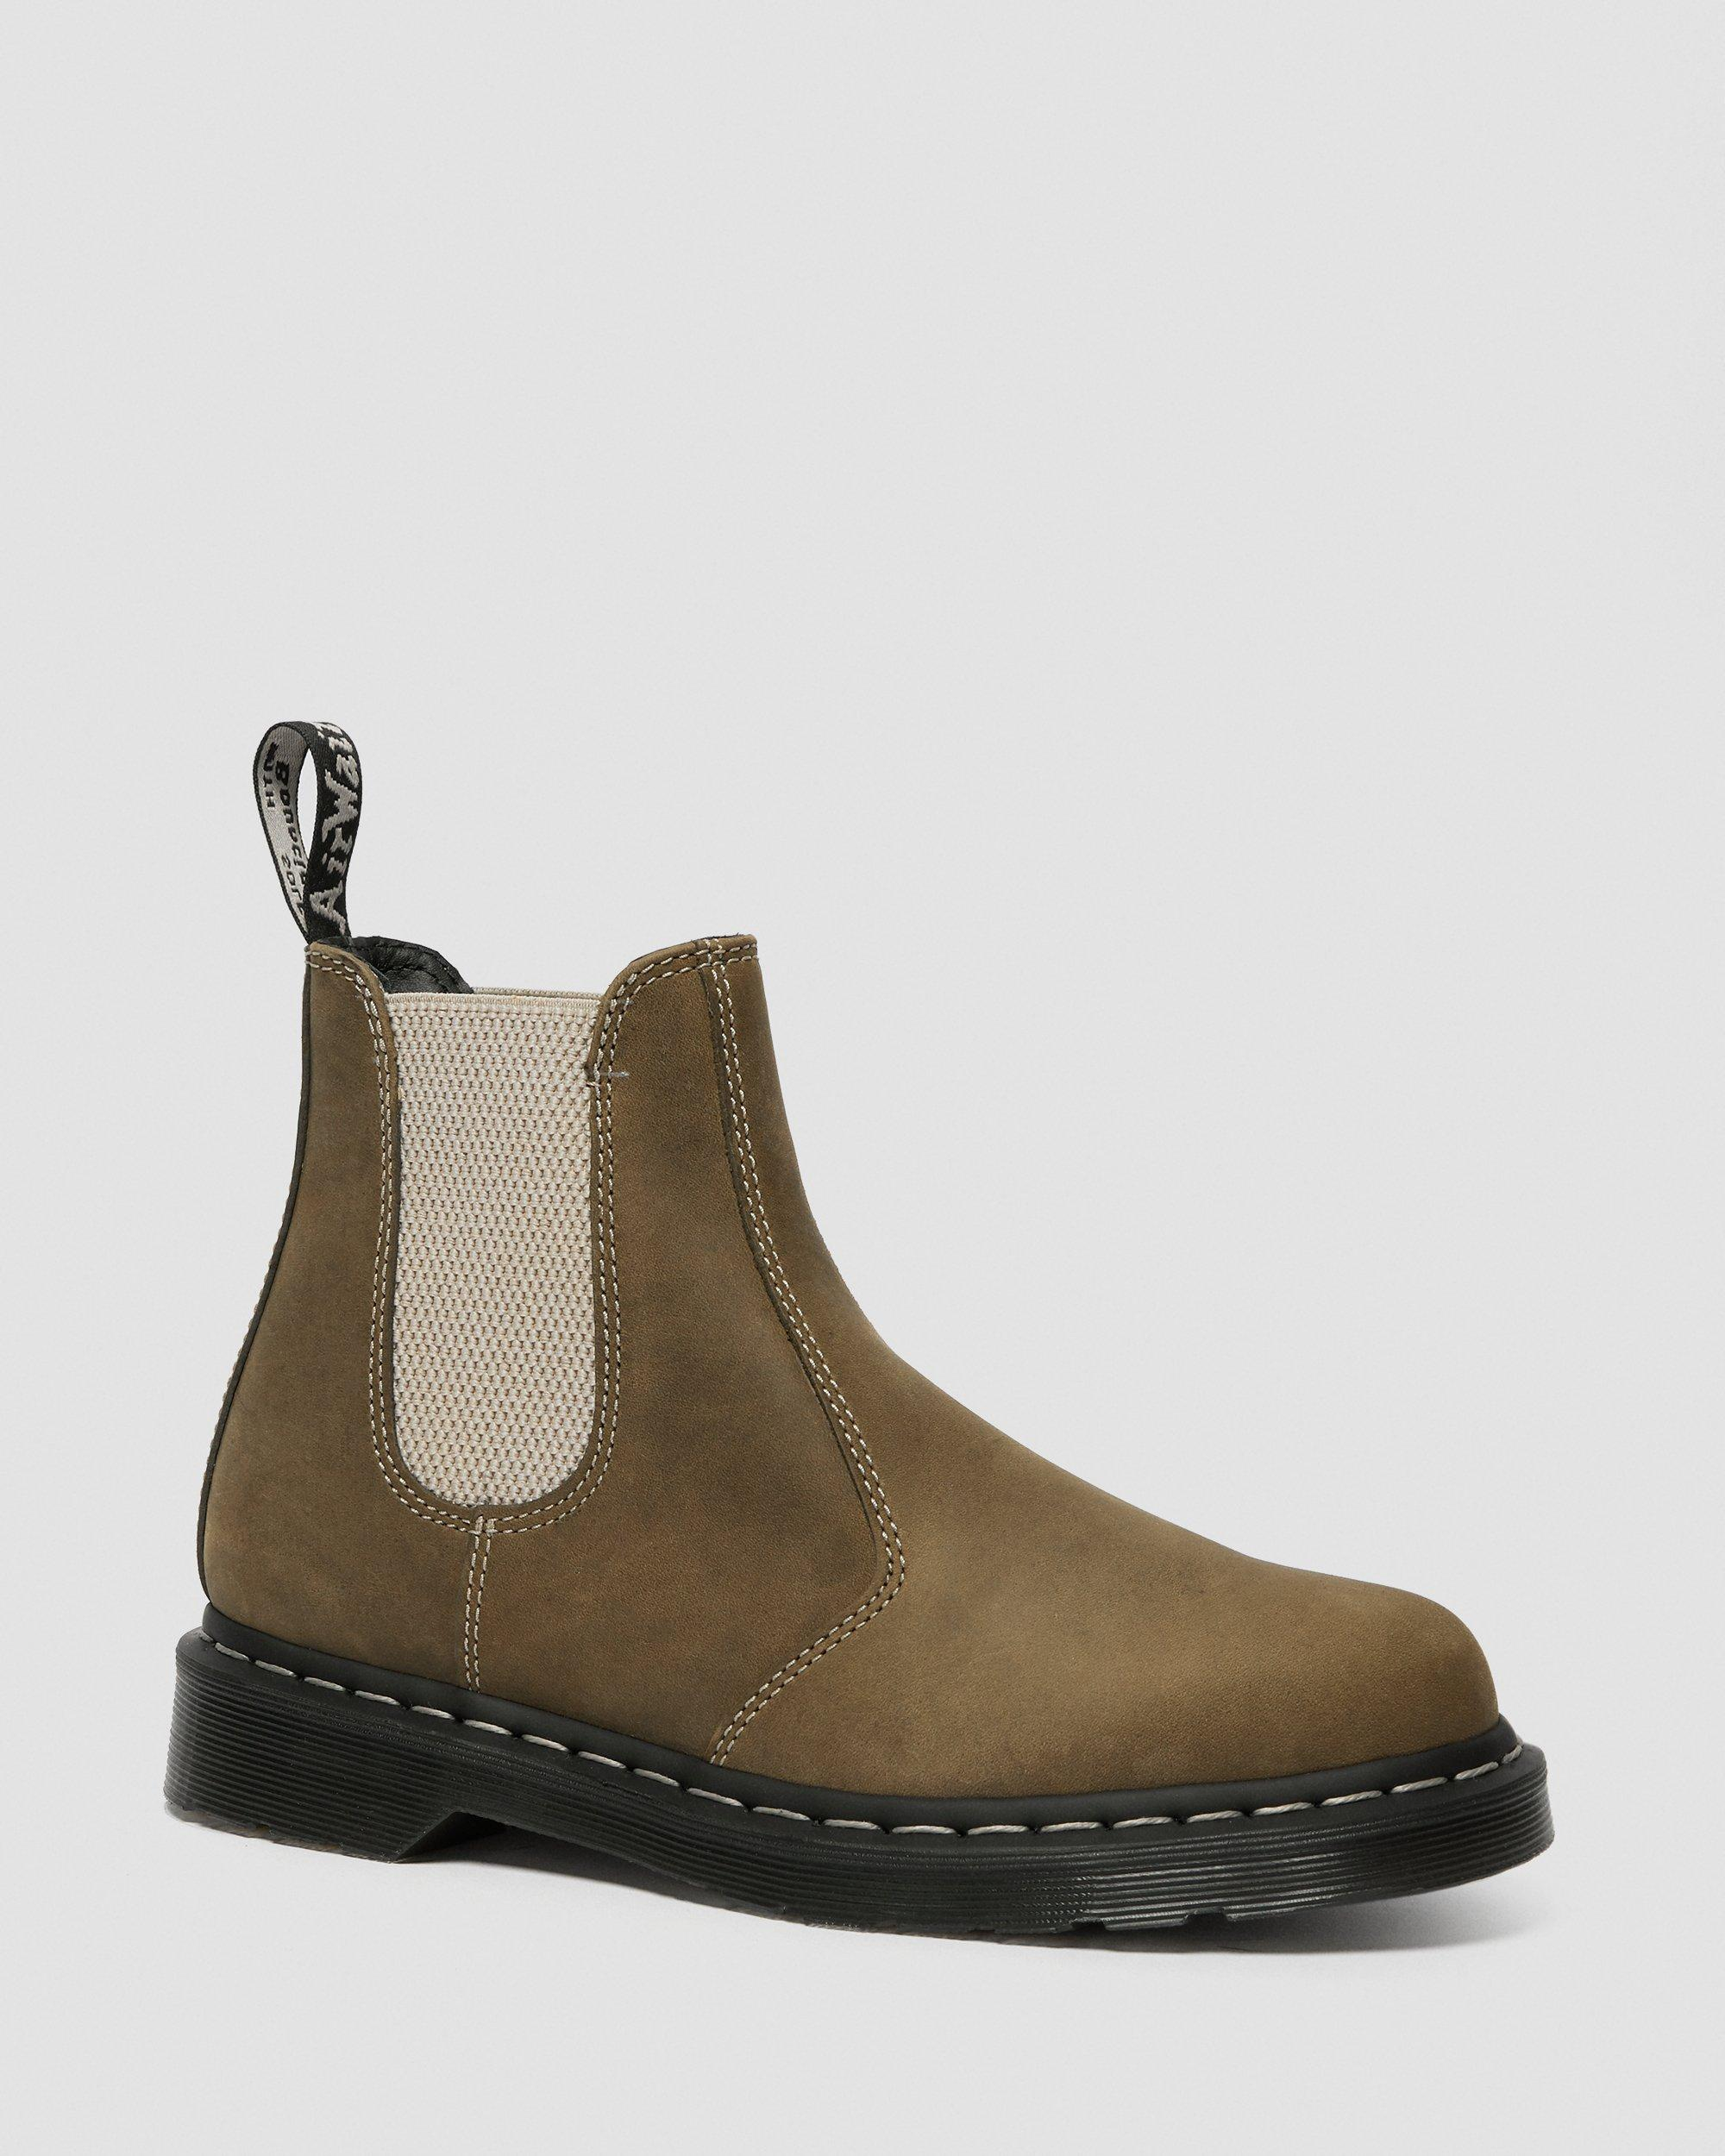 Dr. Martens New black friday Womens 8 Eye Boots Grenade